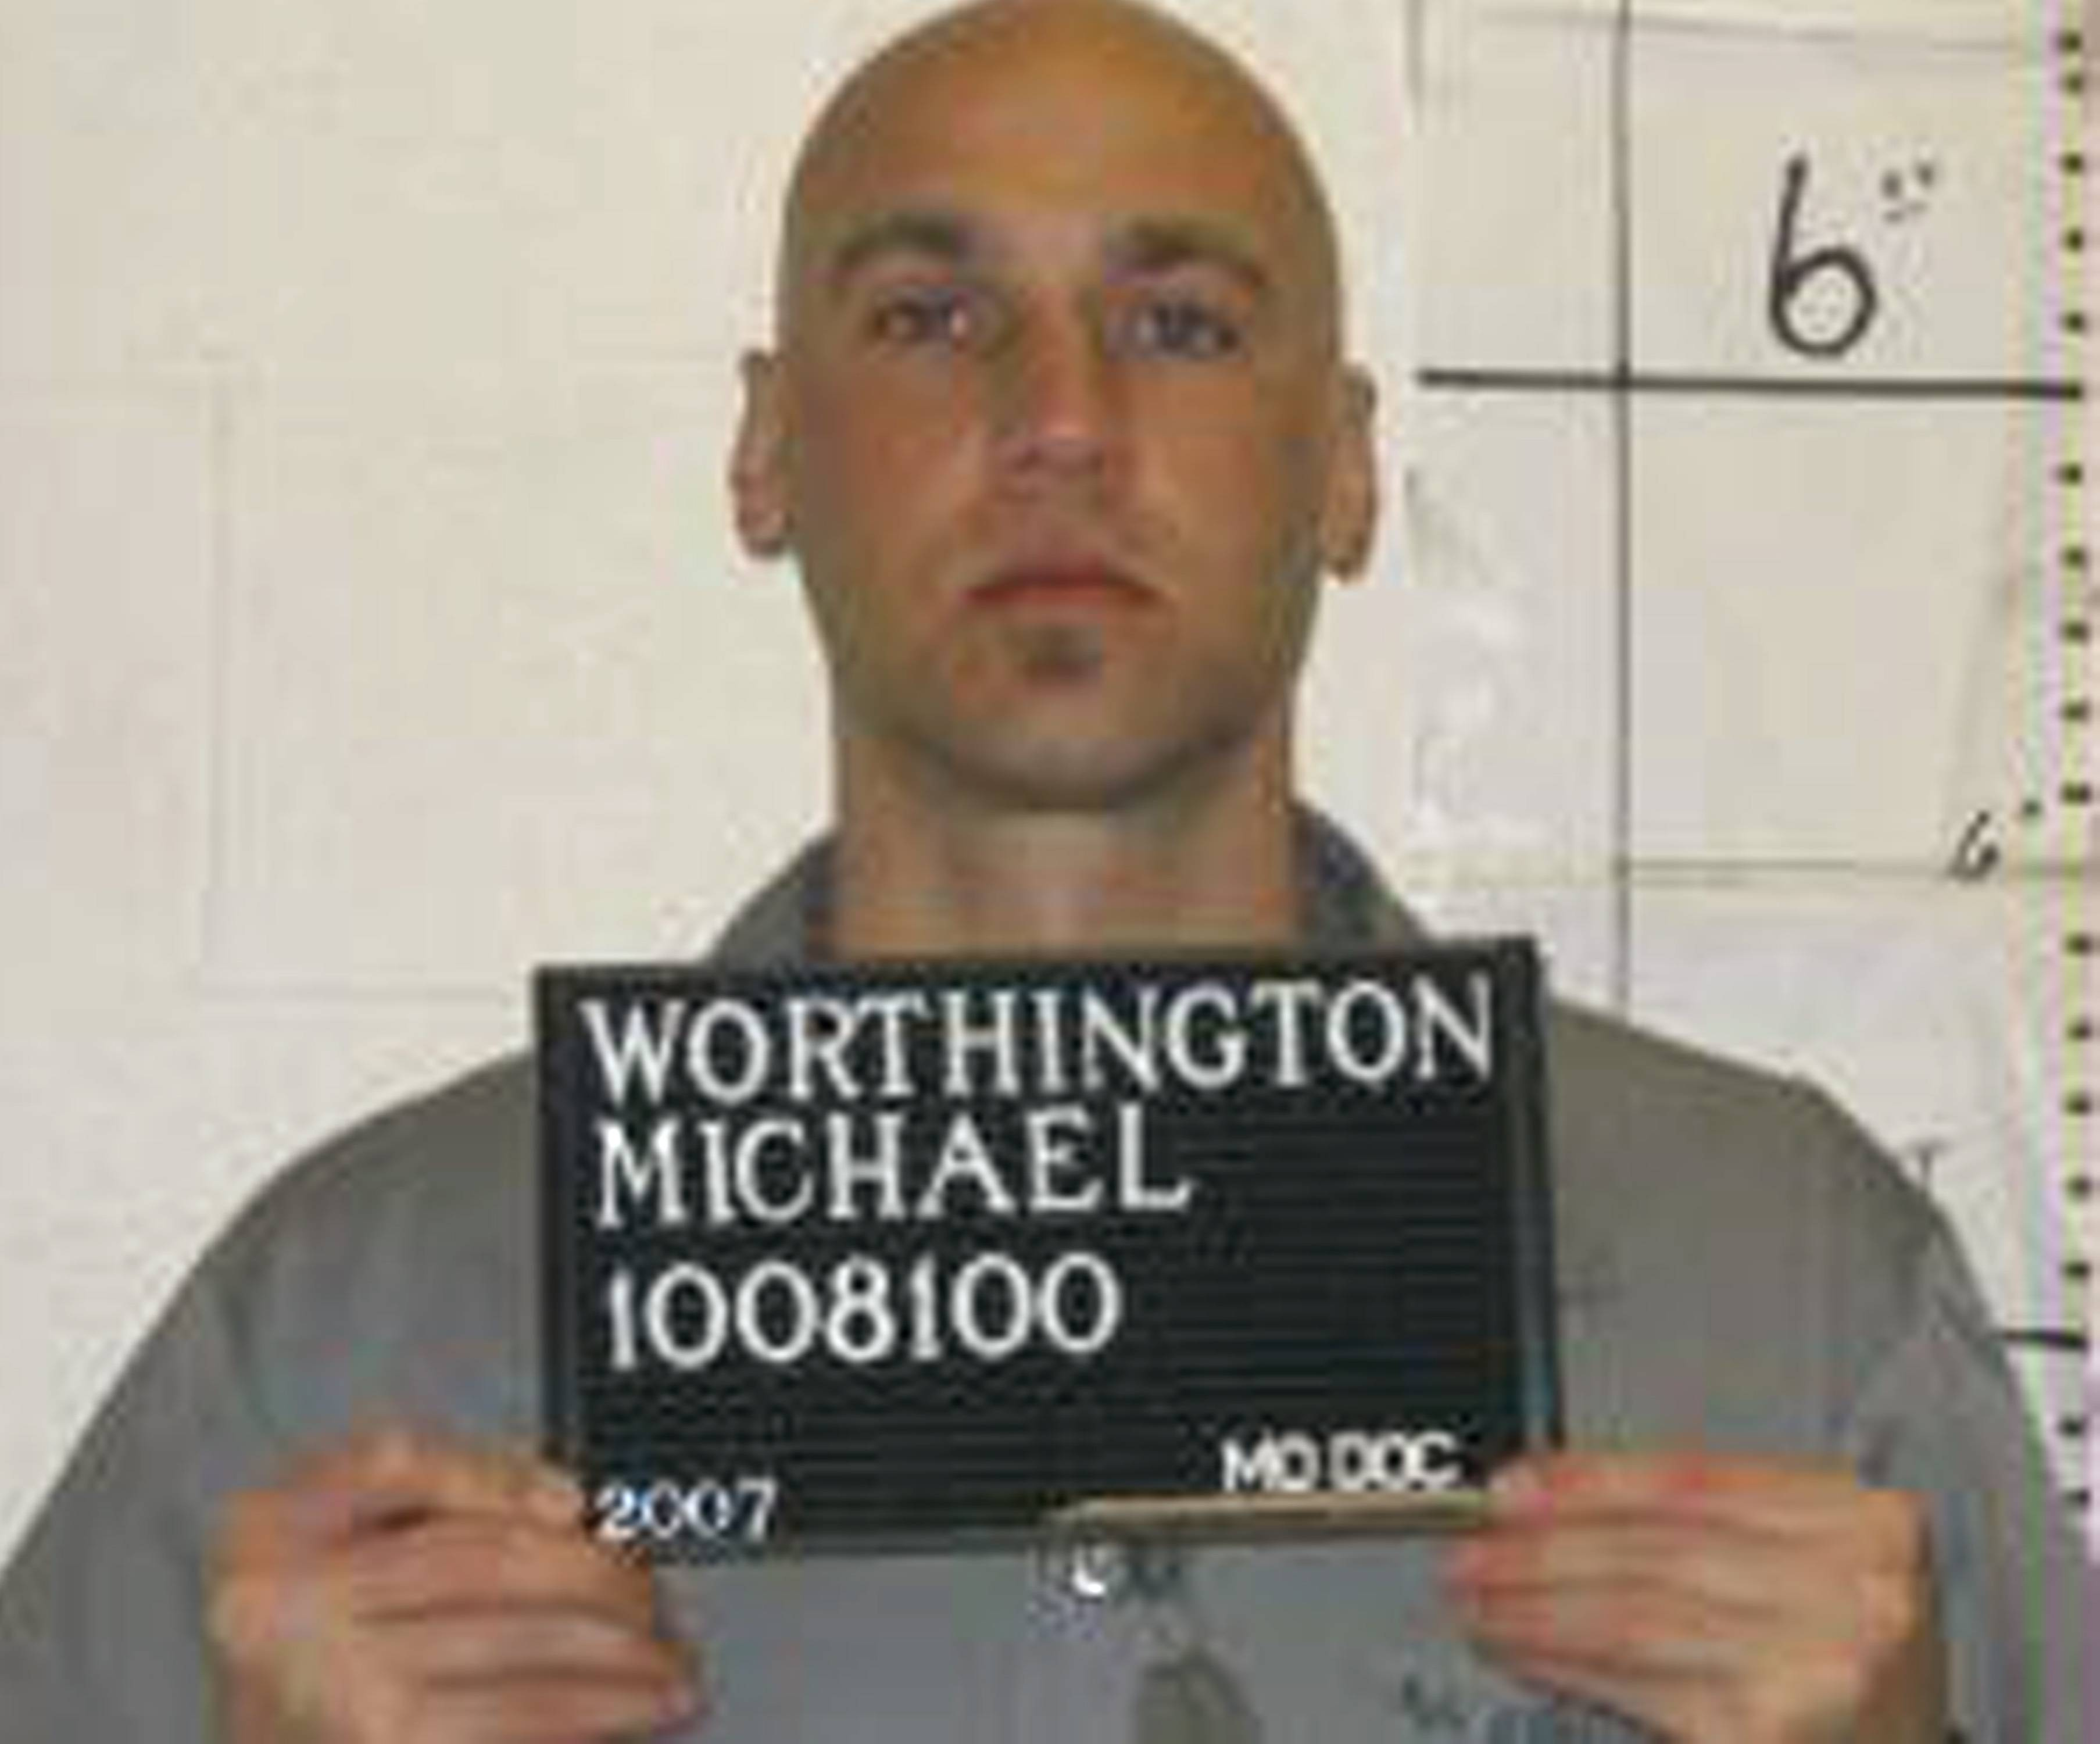 Michael Worthington's execution was the first since Joseph Rudolph Wood gasped for air in July in Arizona during a lethal injection process that took nearly two hours to complete.